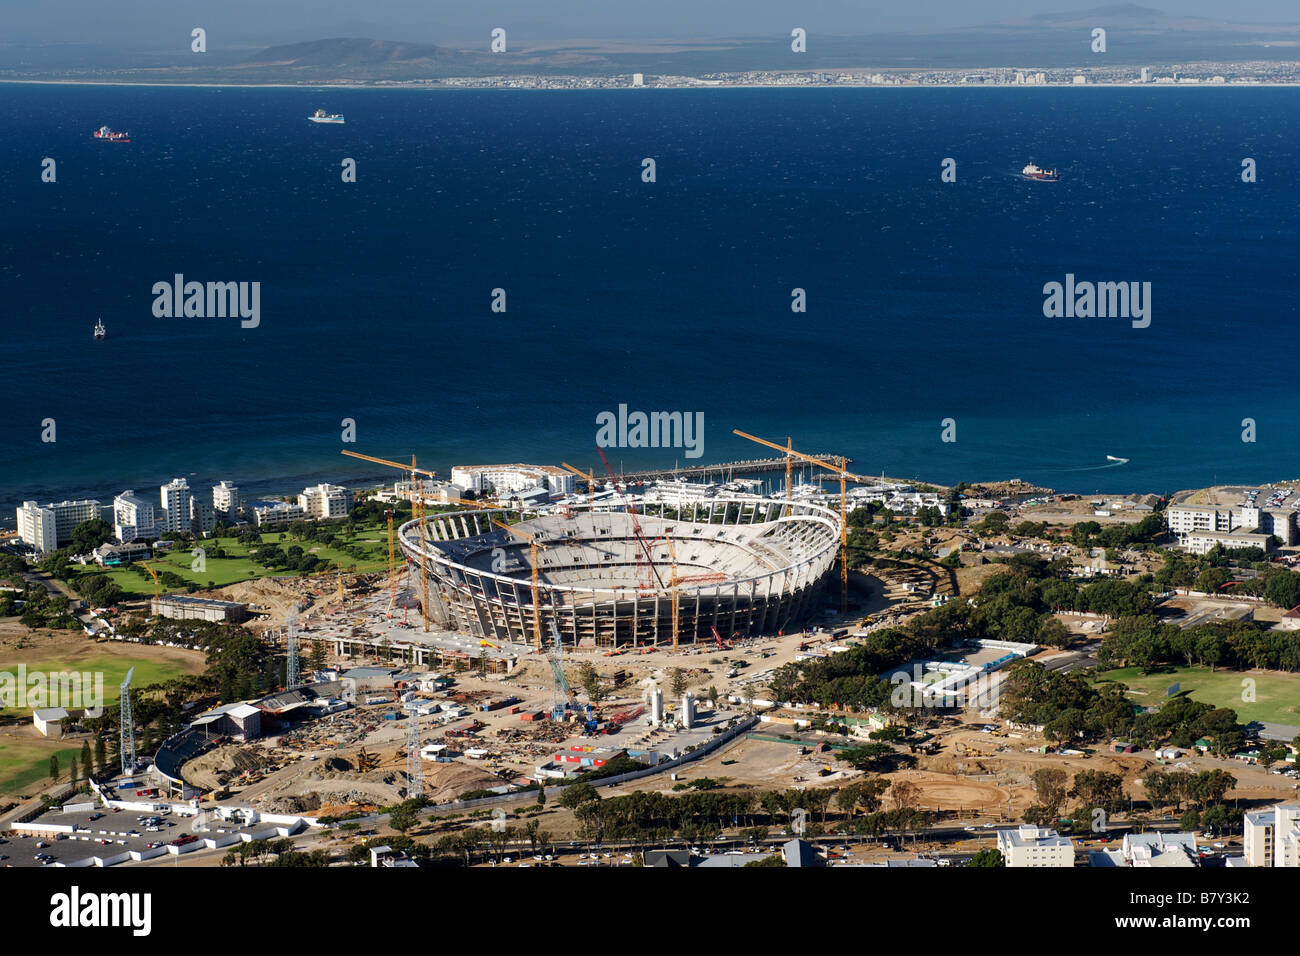 View of the 2010 FIFA world cup stadium under construction in Greenpoint, Cape Town, South Africa. - Stock Image